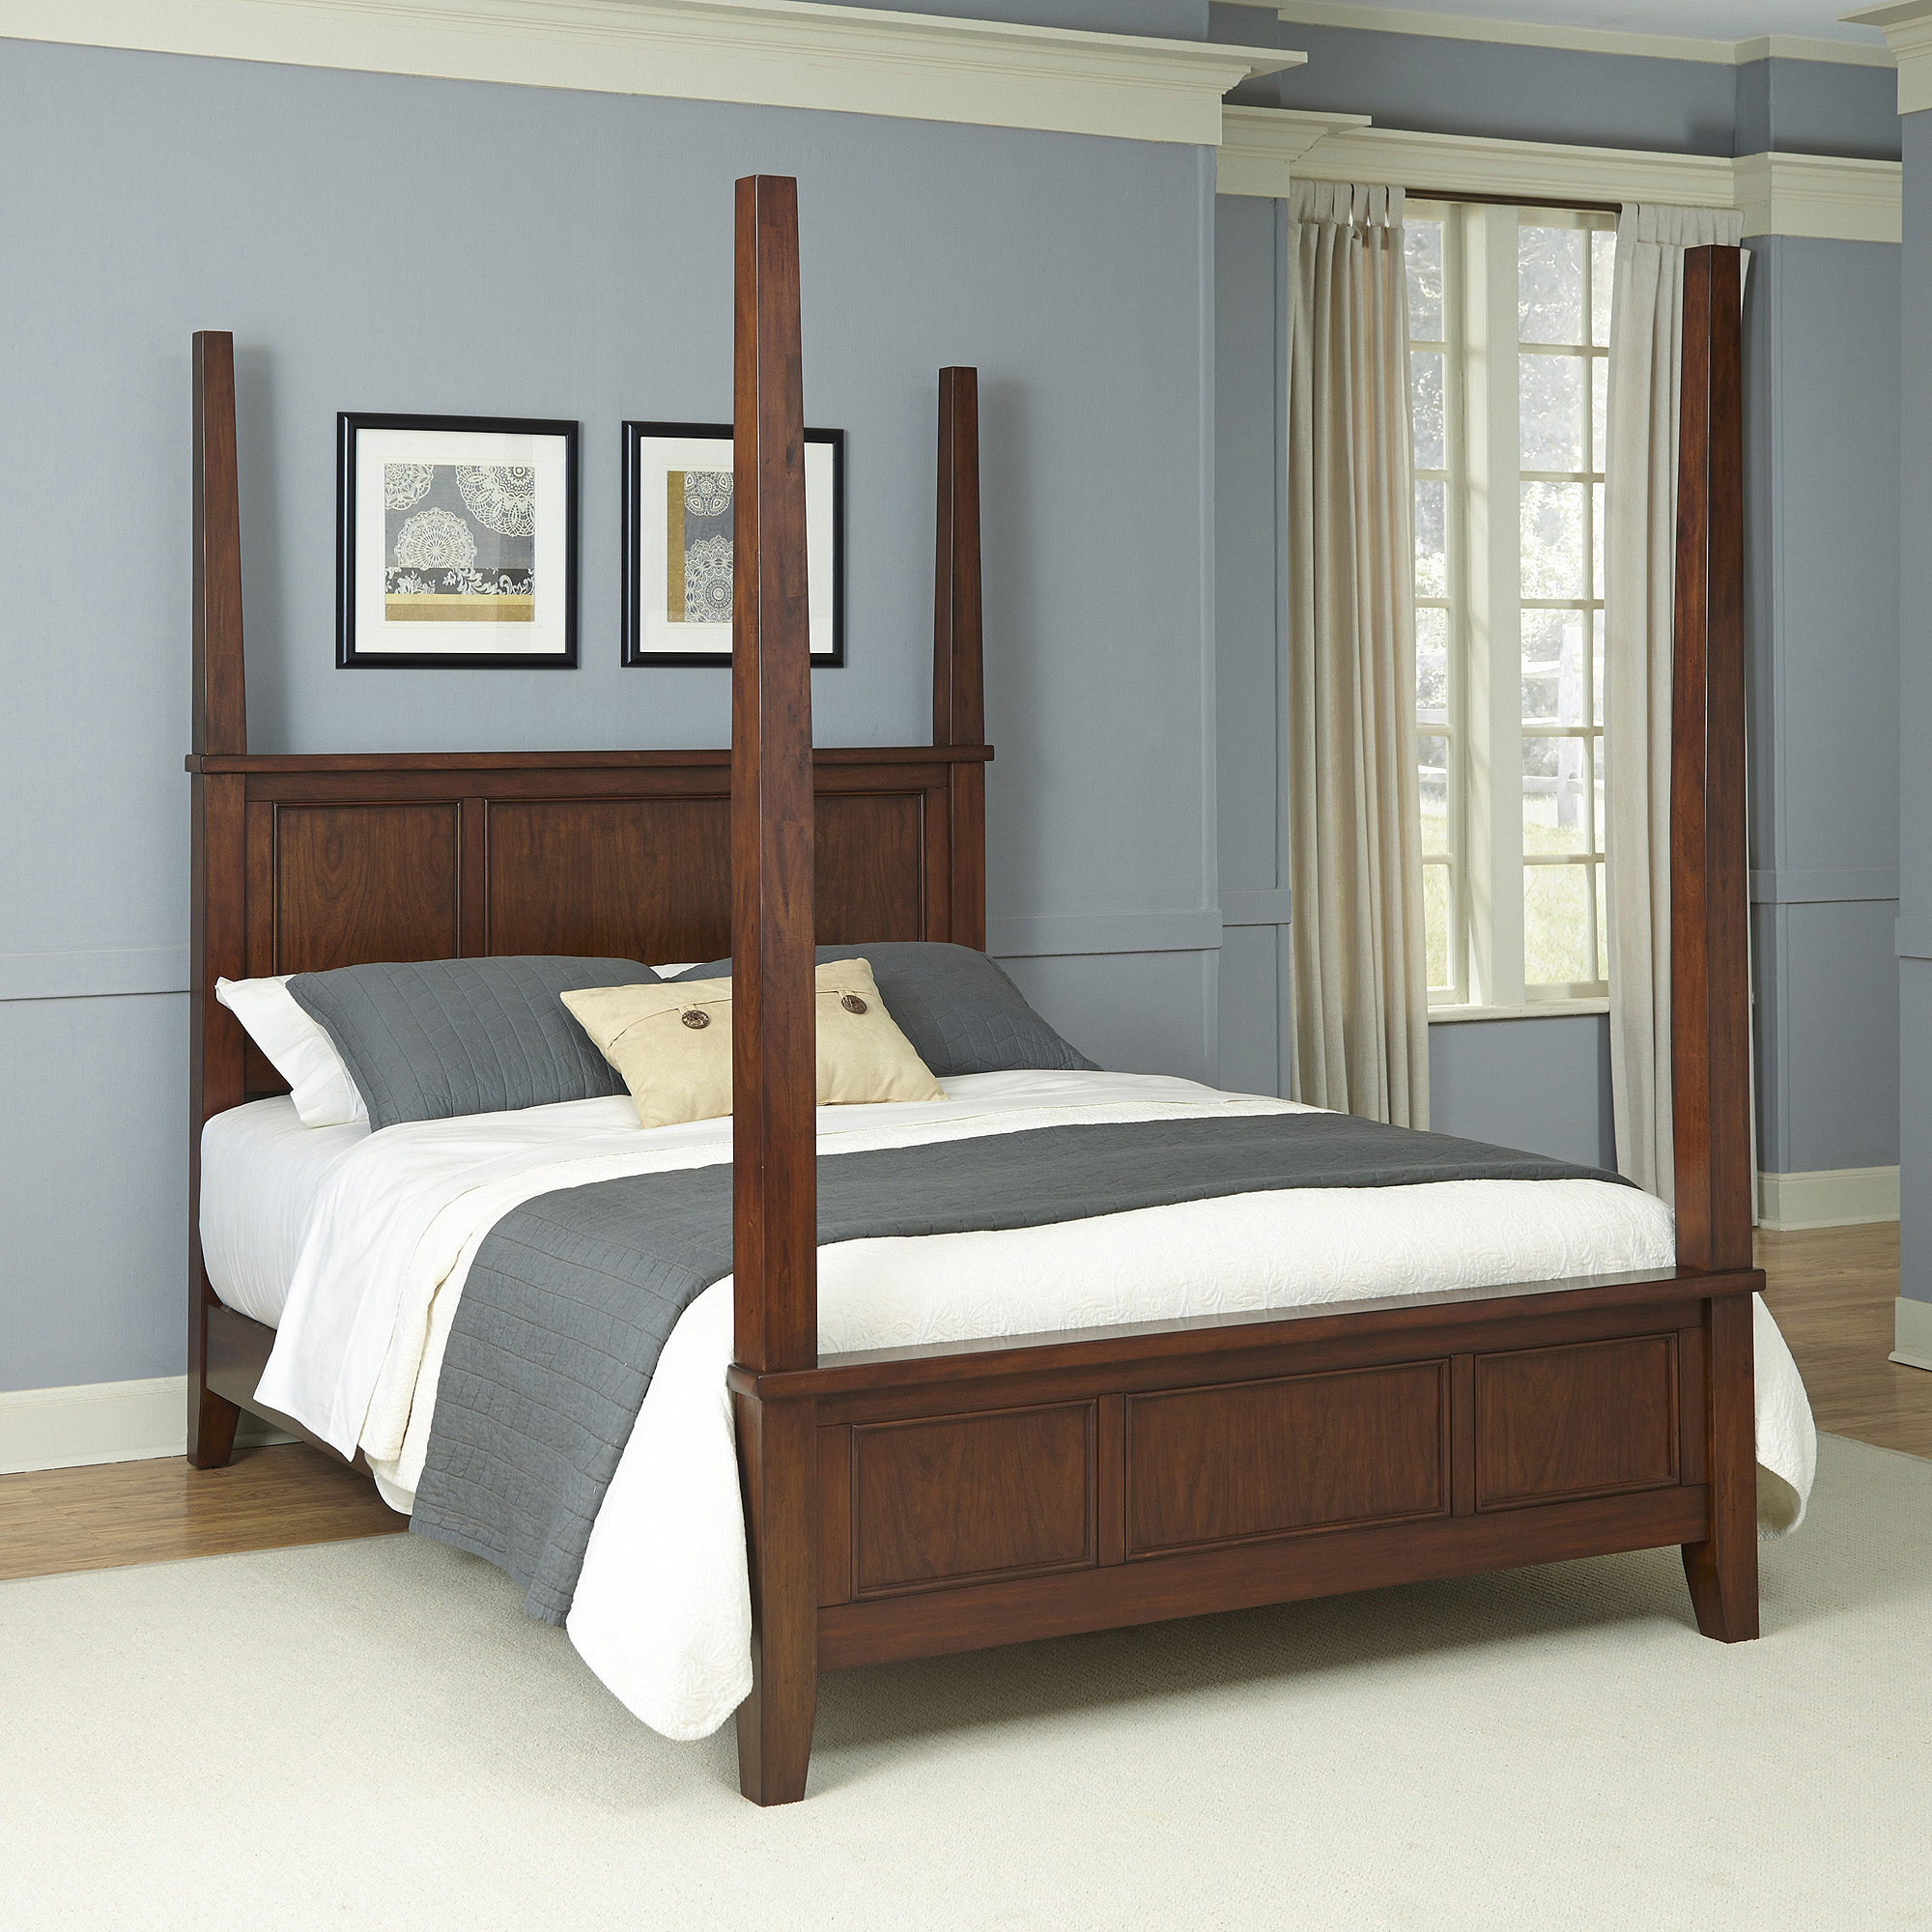 Home Styles Chesapeake King Poster Bed